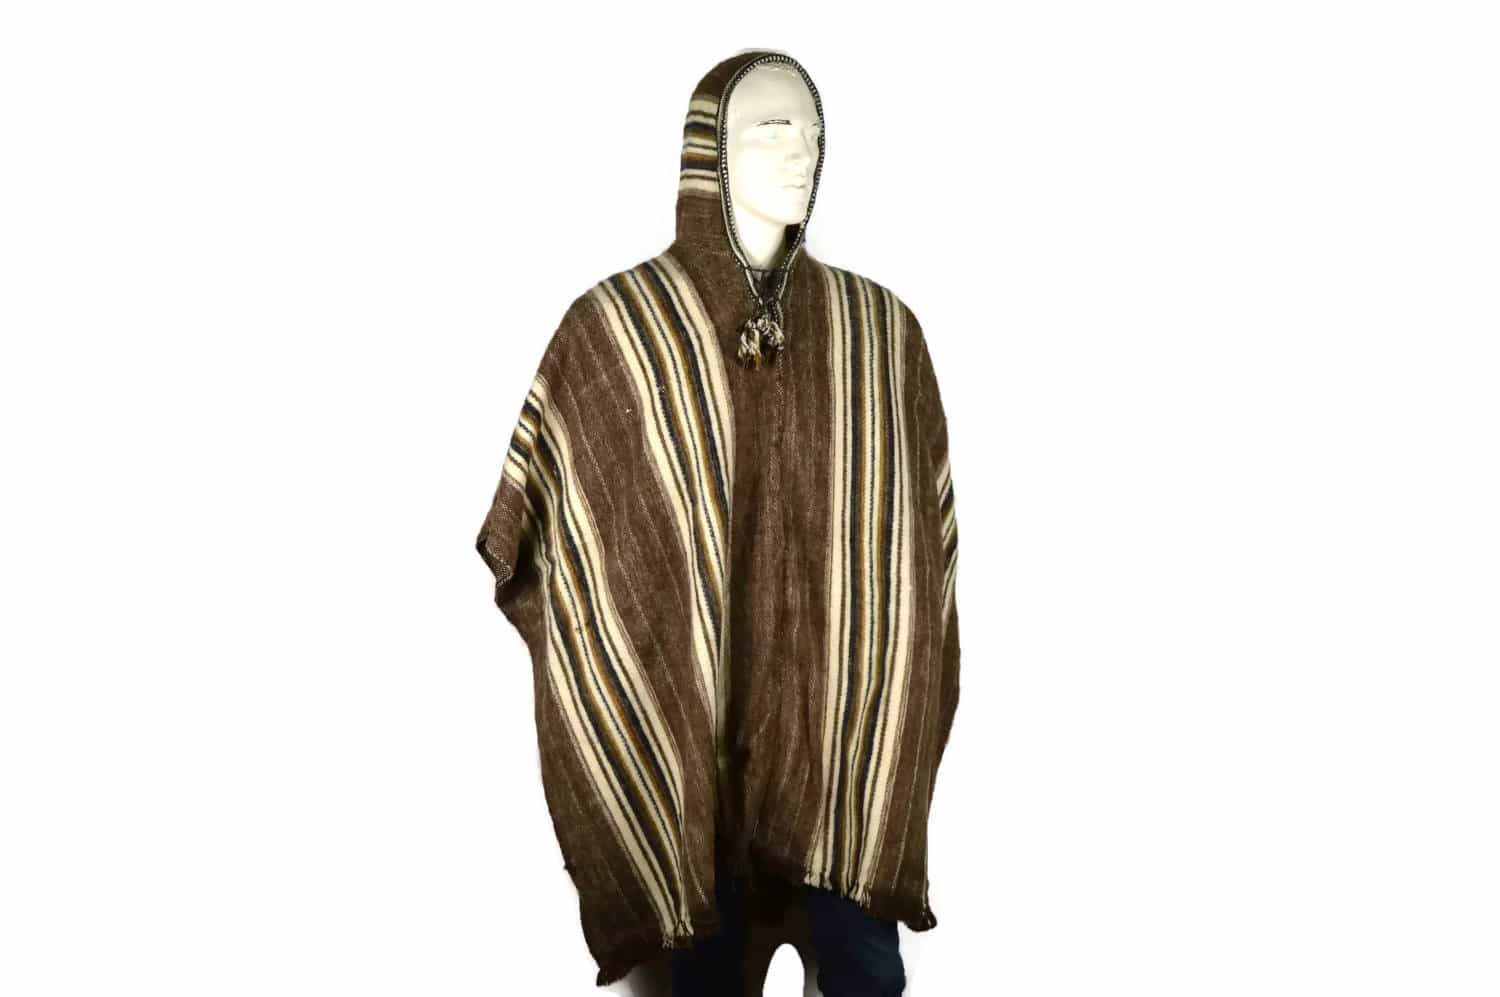 robuster poncho aus schafswolle f r sie und ihn handmade from peru. Black Bedroom Furniture Sets. Home Design Ideas